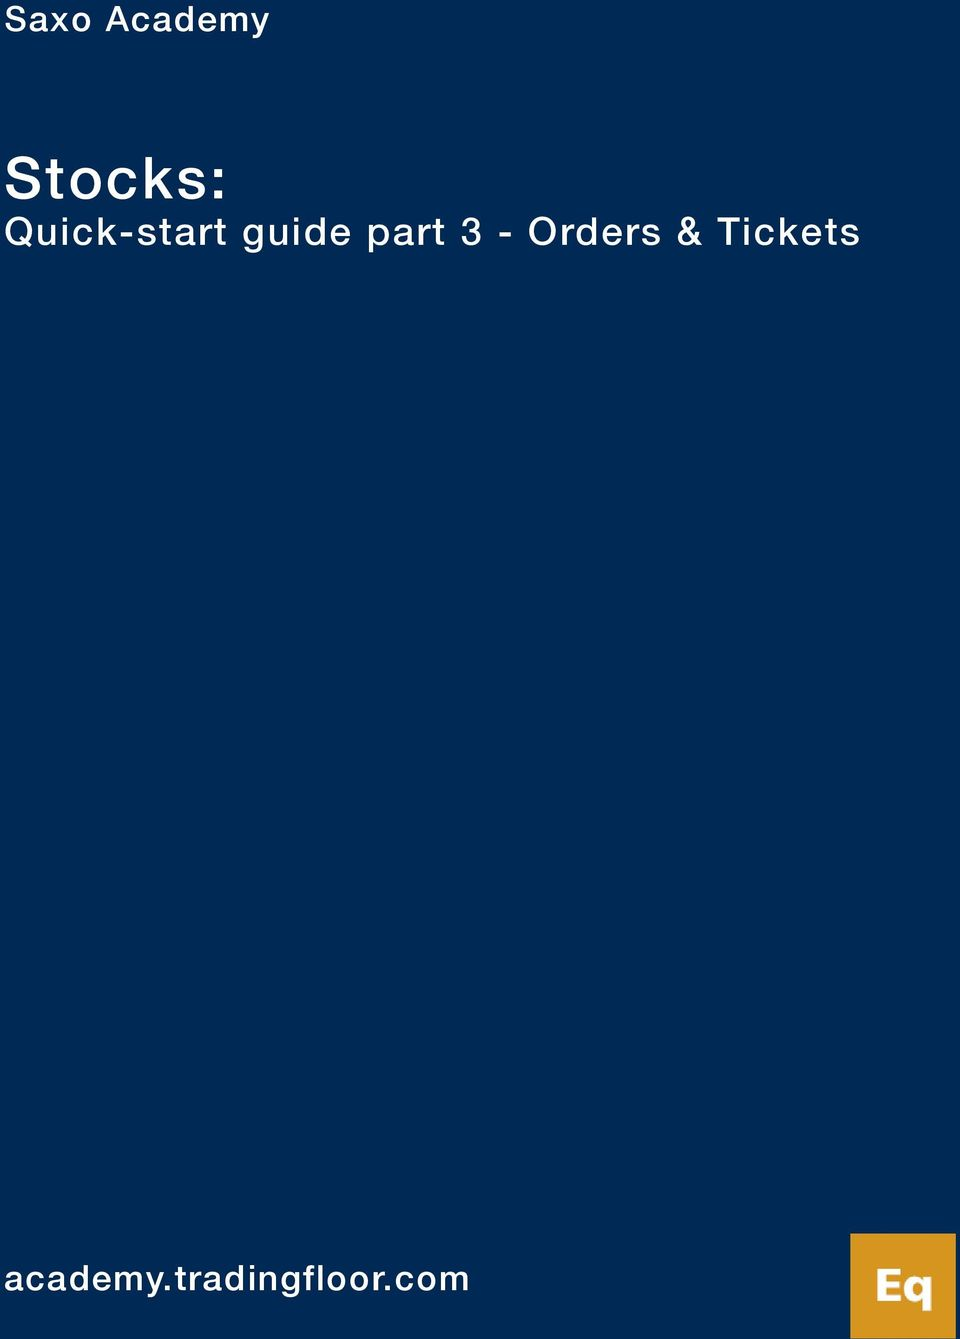 3 - Orders & Tickets